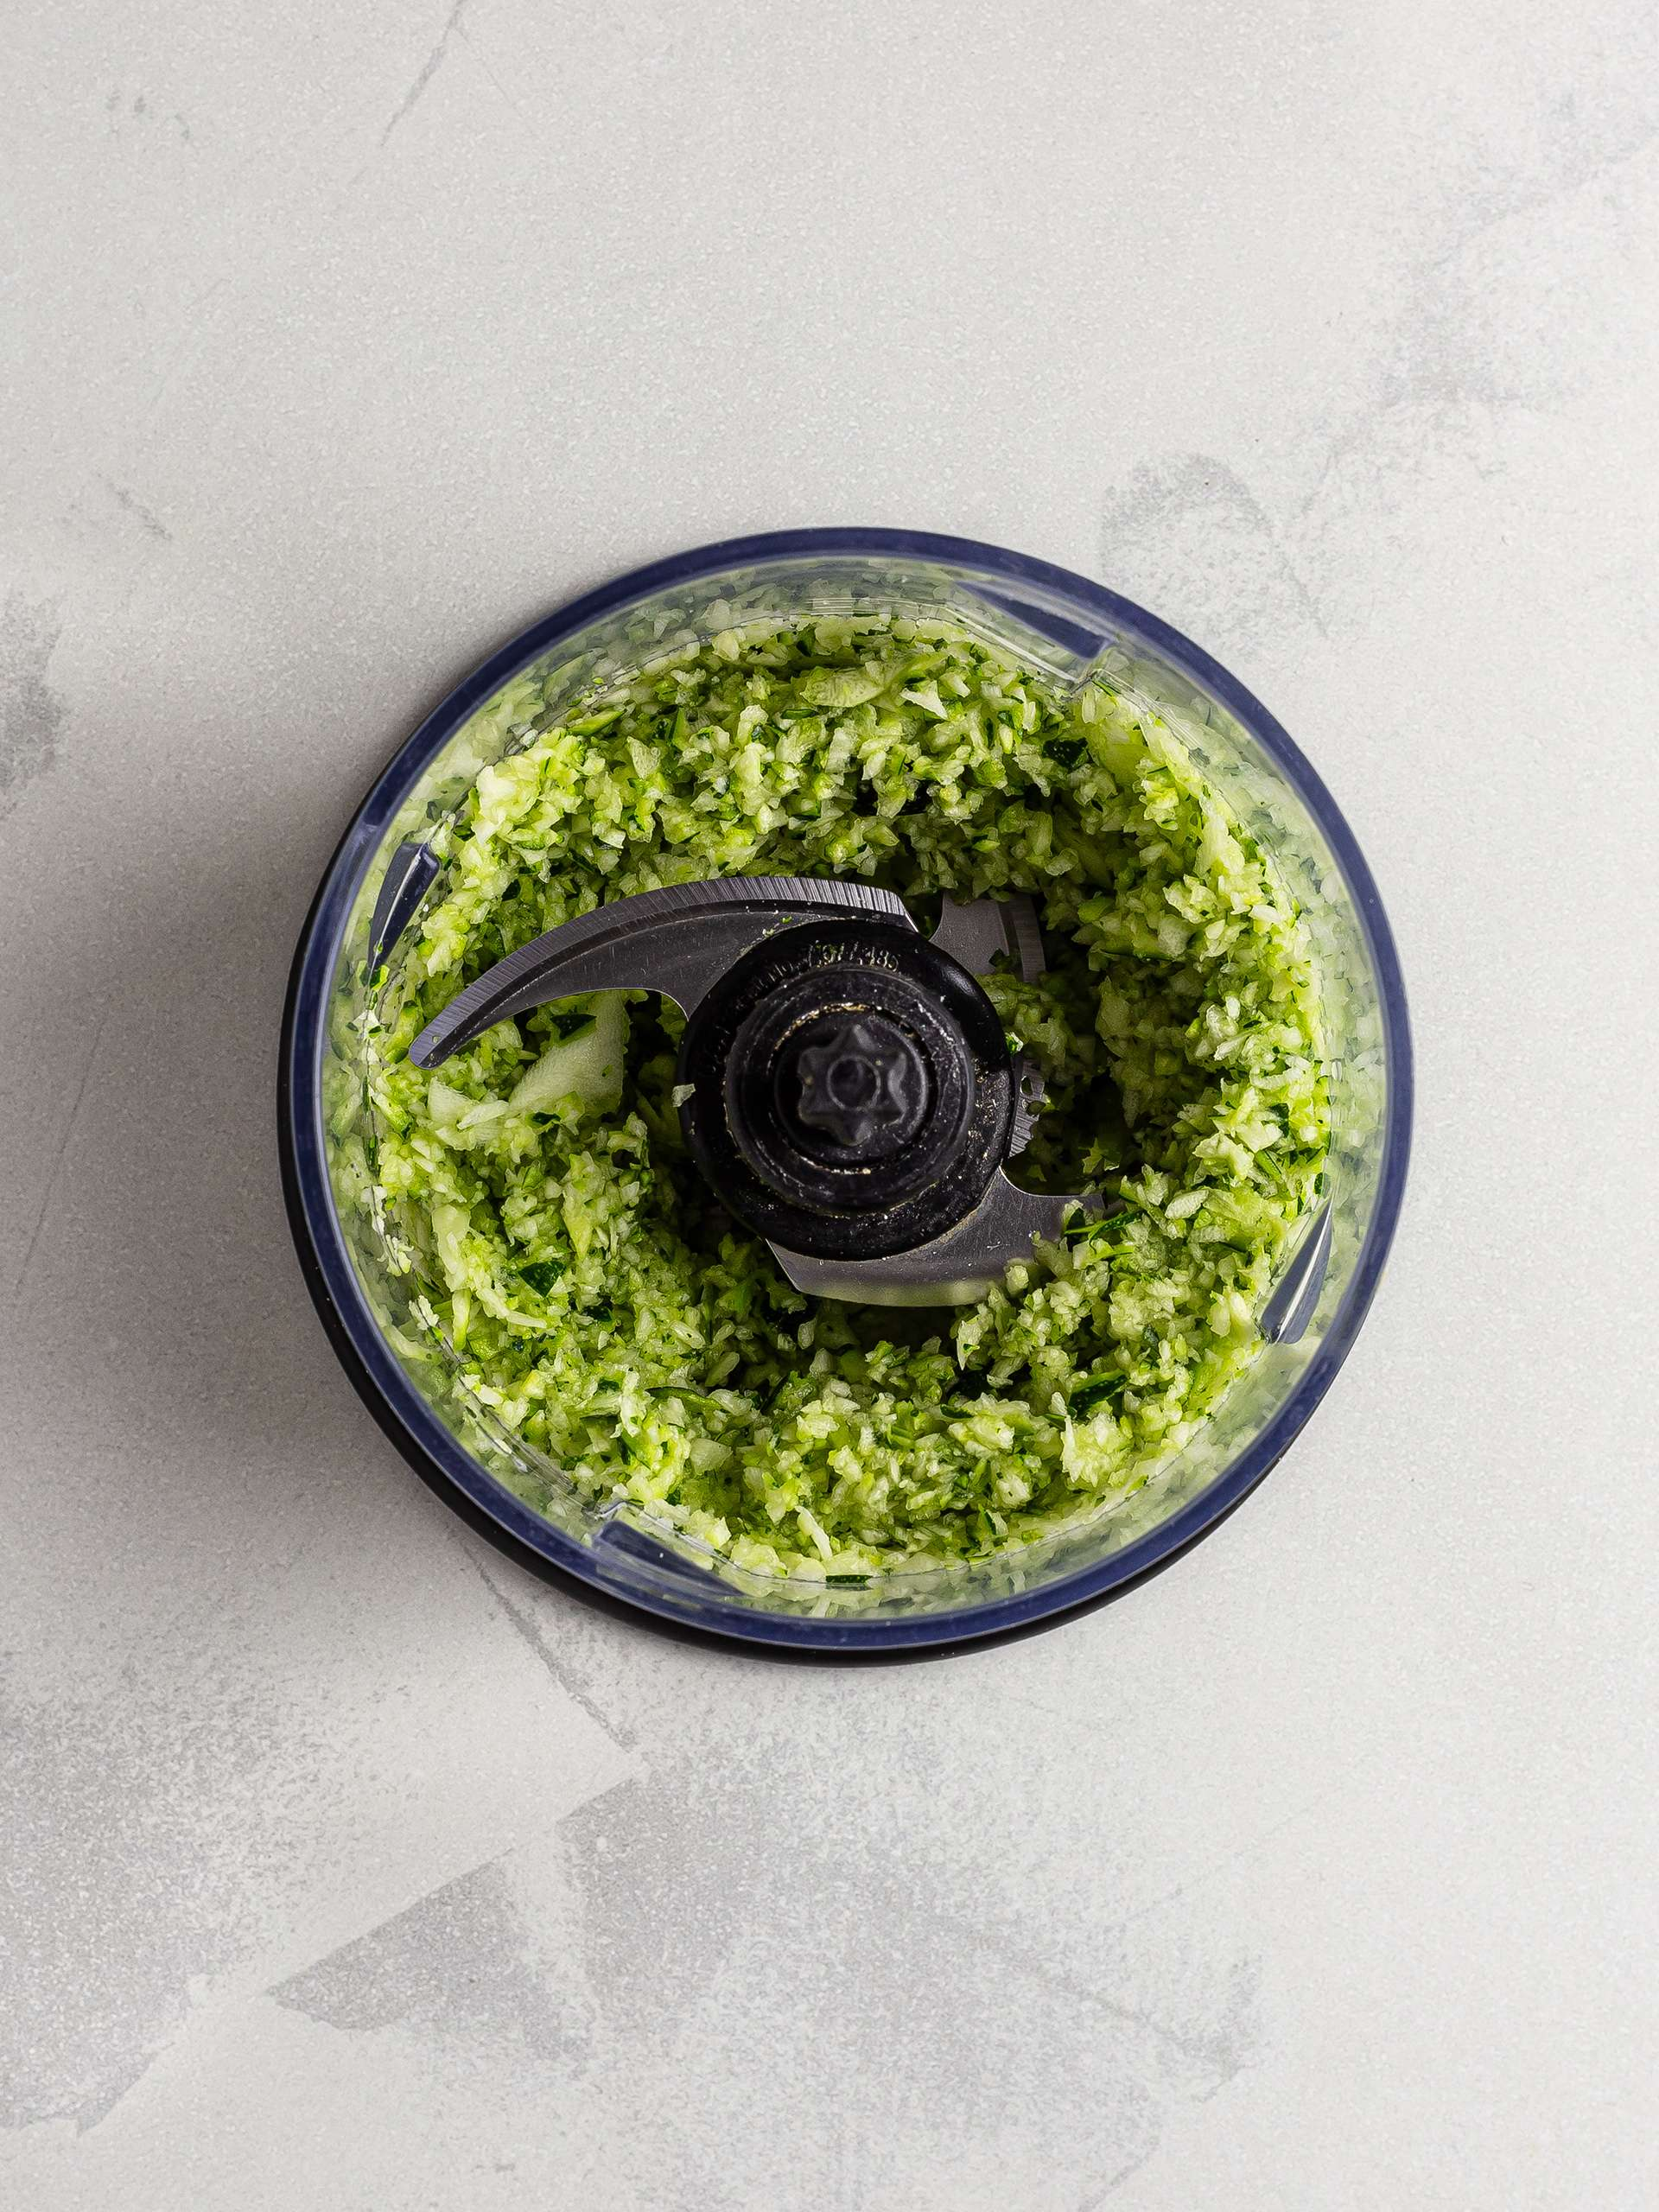 Grated zucchini in a food processor